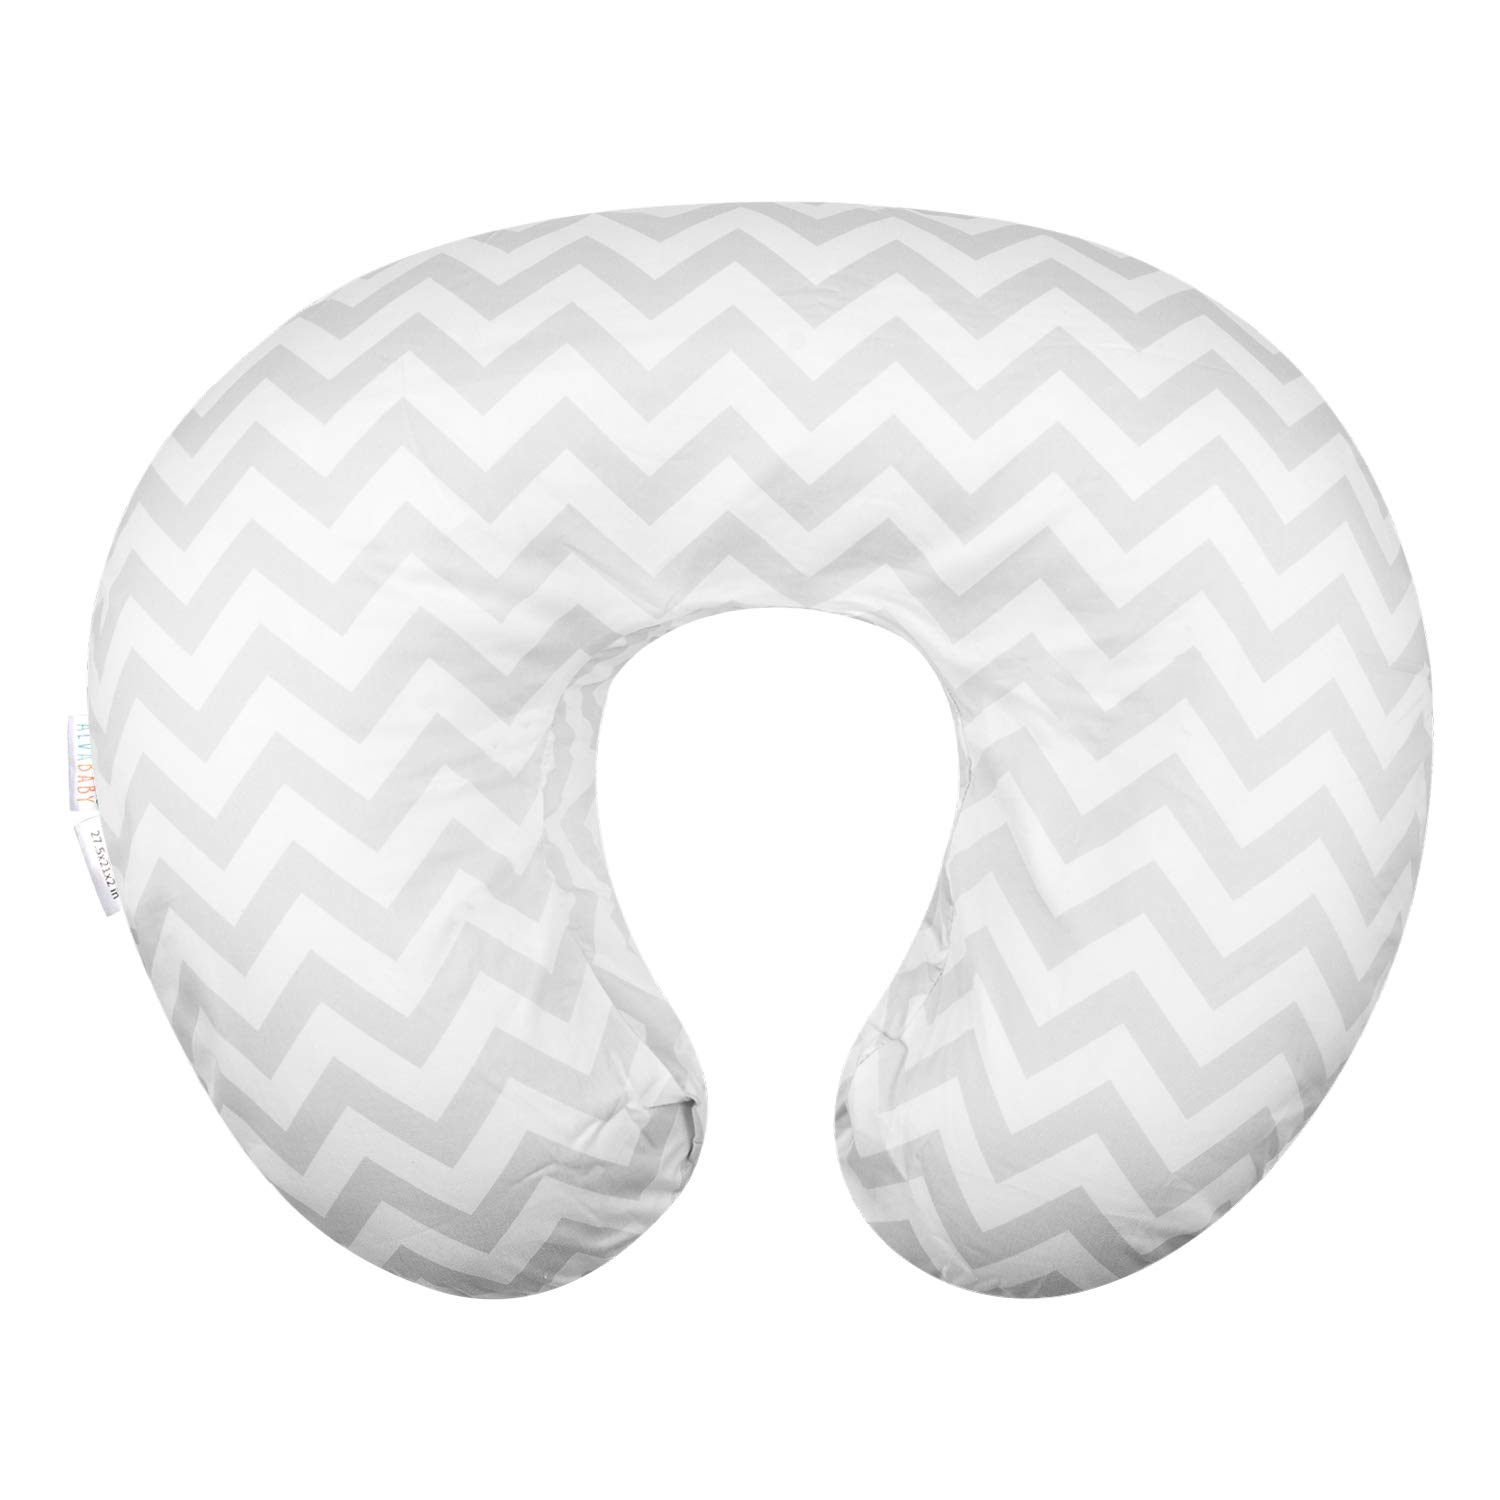 ALVABABY Nursing Pillow Cover Slipcover,100% Organic Cotton,Soft and Comfortable,Feathers Design,Maternity Breastfeeding Newborn Infant Feeding Cushion Cover,Baby Shower Gift (ZT-Z16)